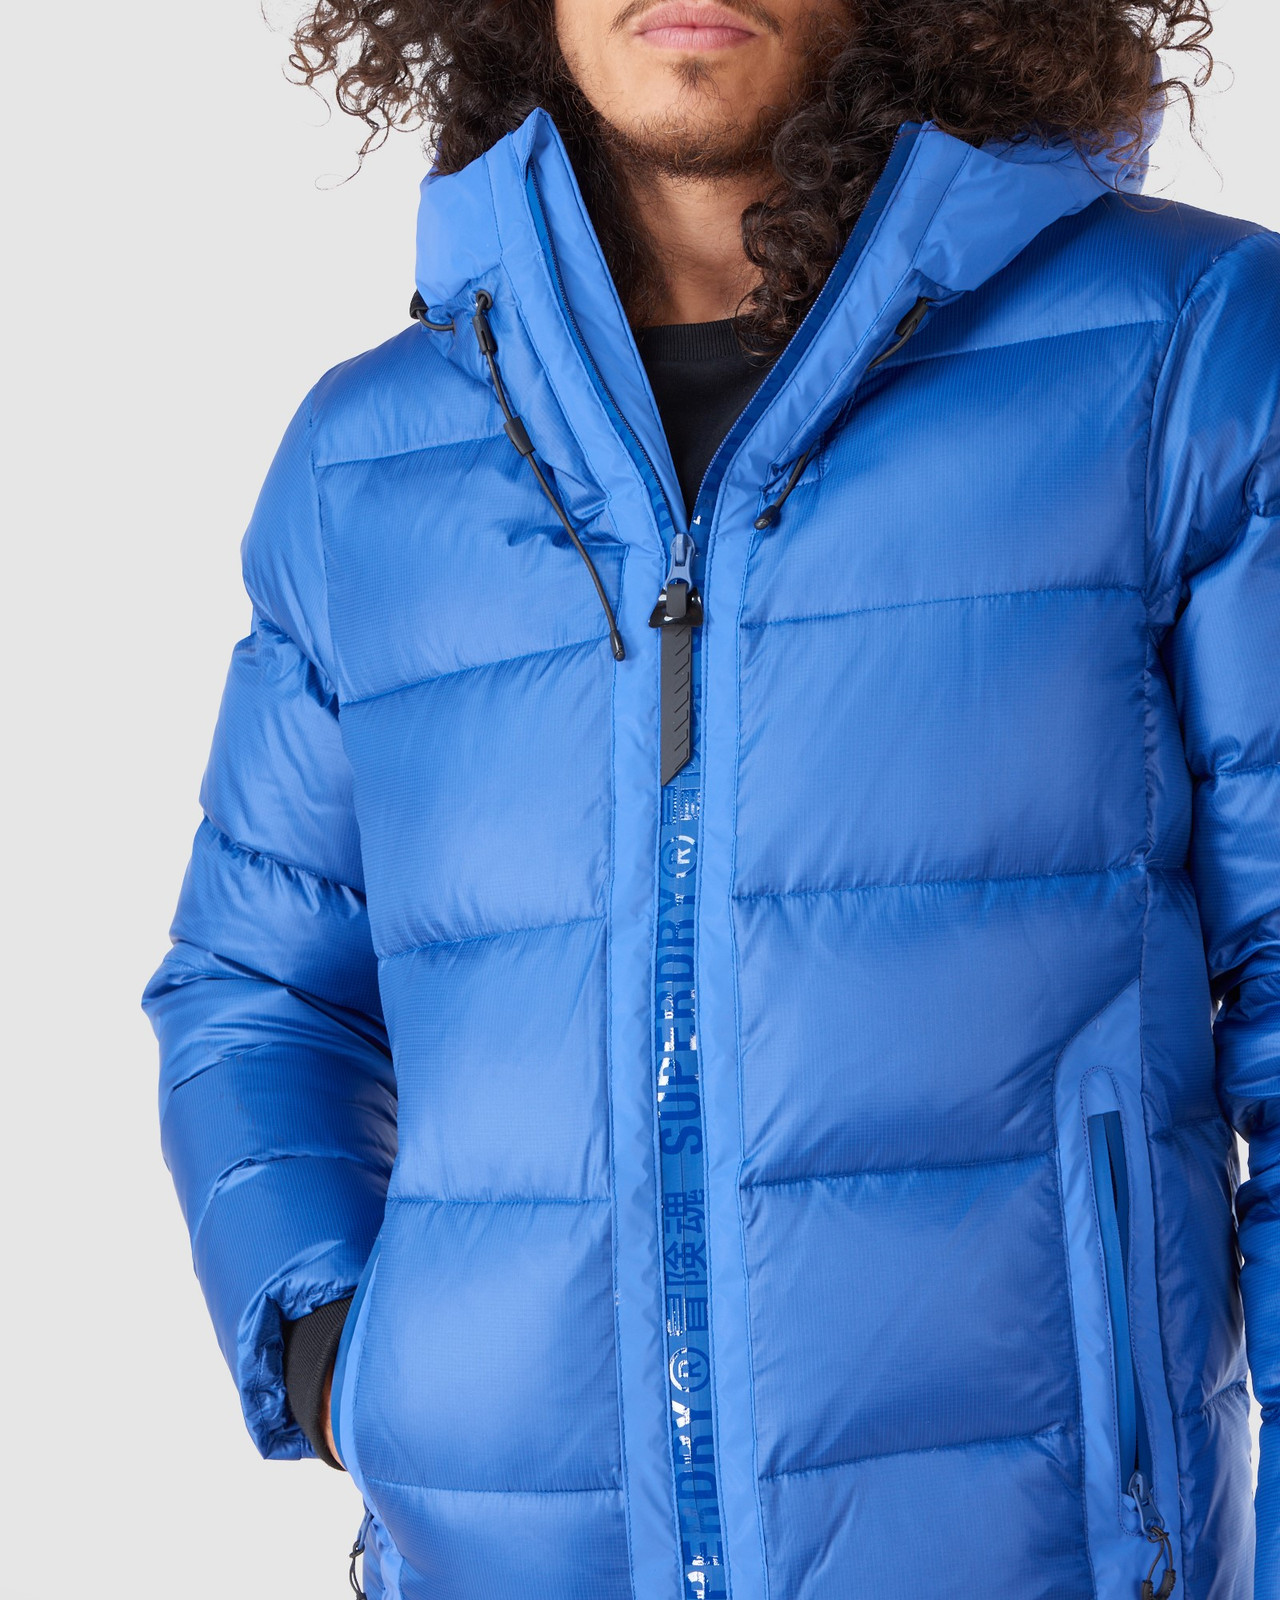 Superdry Mens MOUNTAIN PRO RACER PUFFER Blue Green Snow Jackets 4